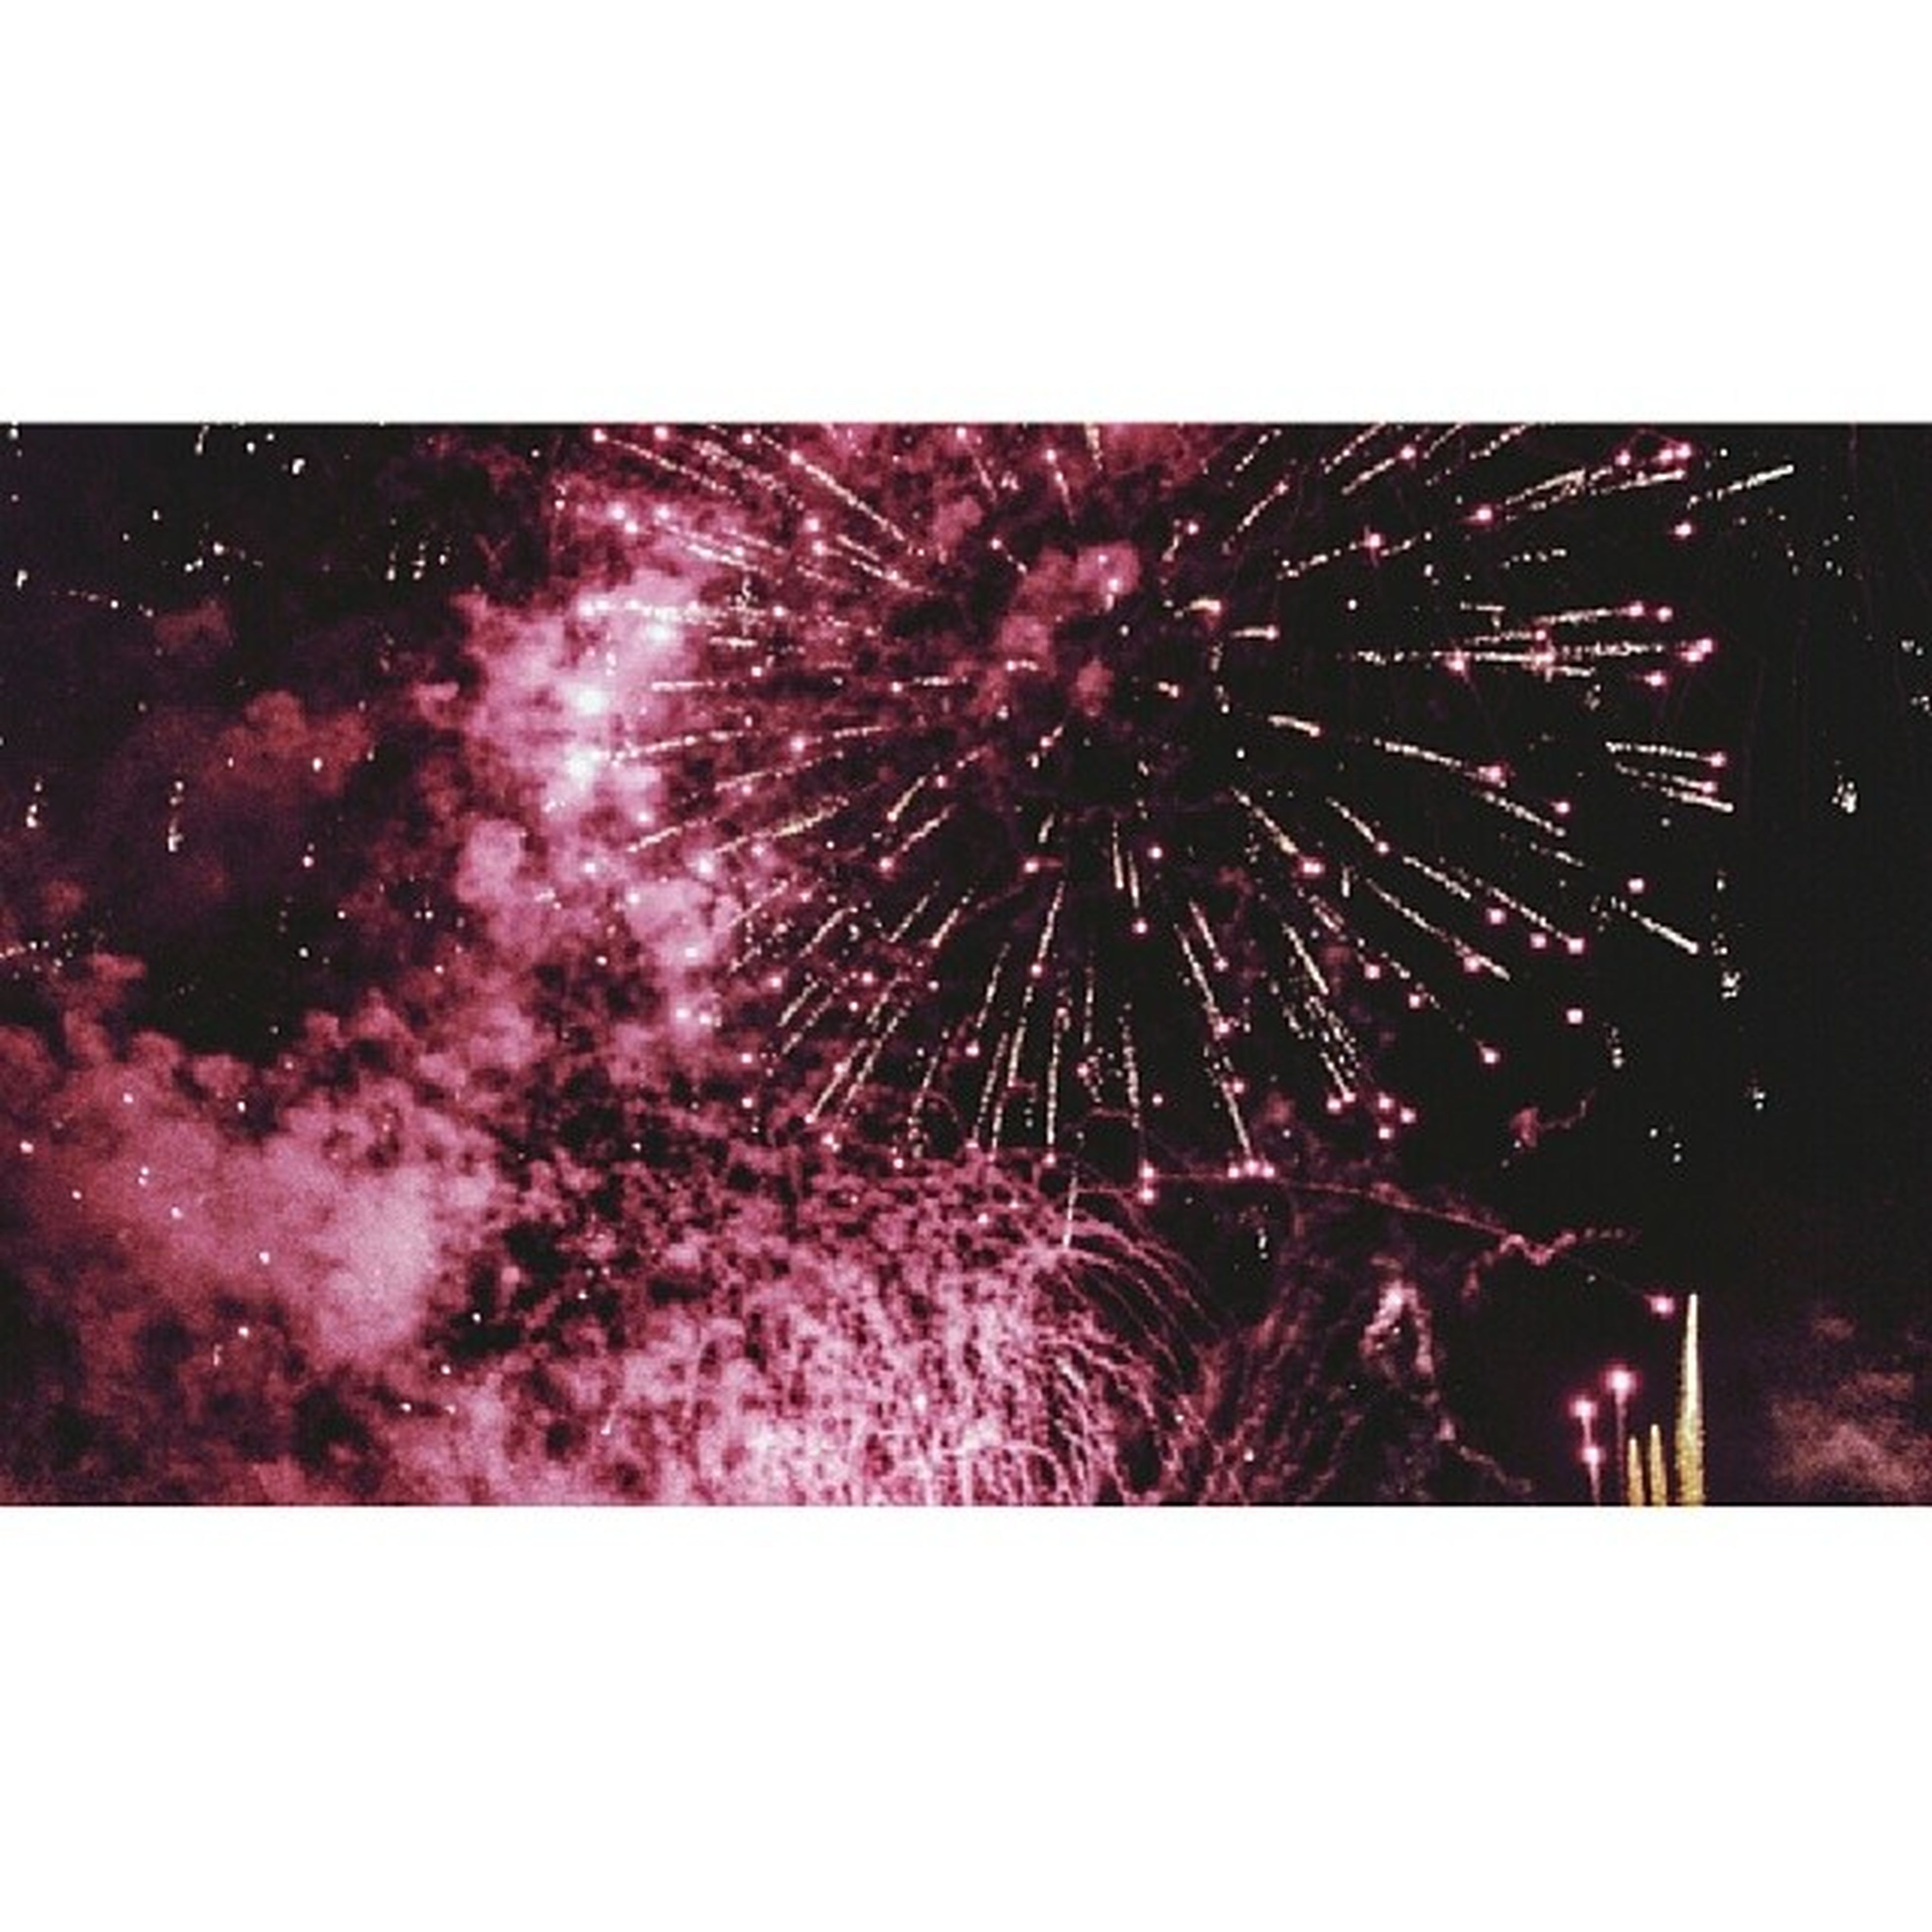 transfer print, night, illuminated, arts culture and entertainment, firework display, celebration, exploding, firework - man made object, auto post production filter, event, motion, sparks, long exposure, blurred motion, glowing, low angle view, entertainment, sky, firework, outdoors